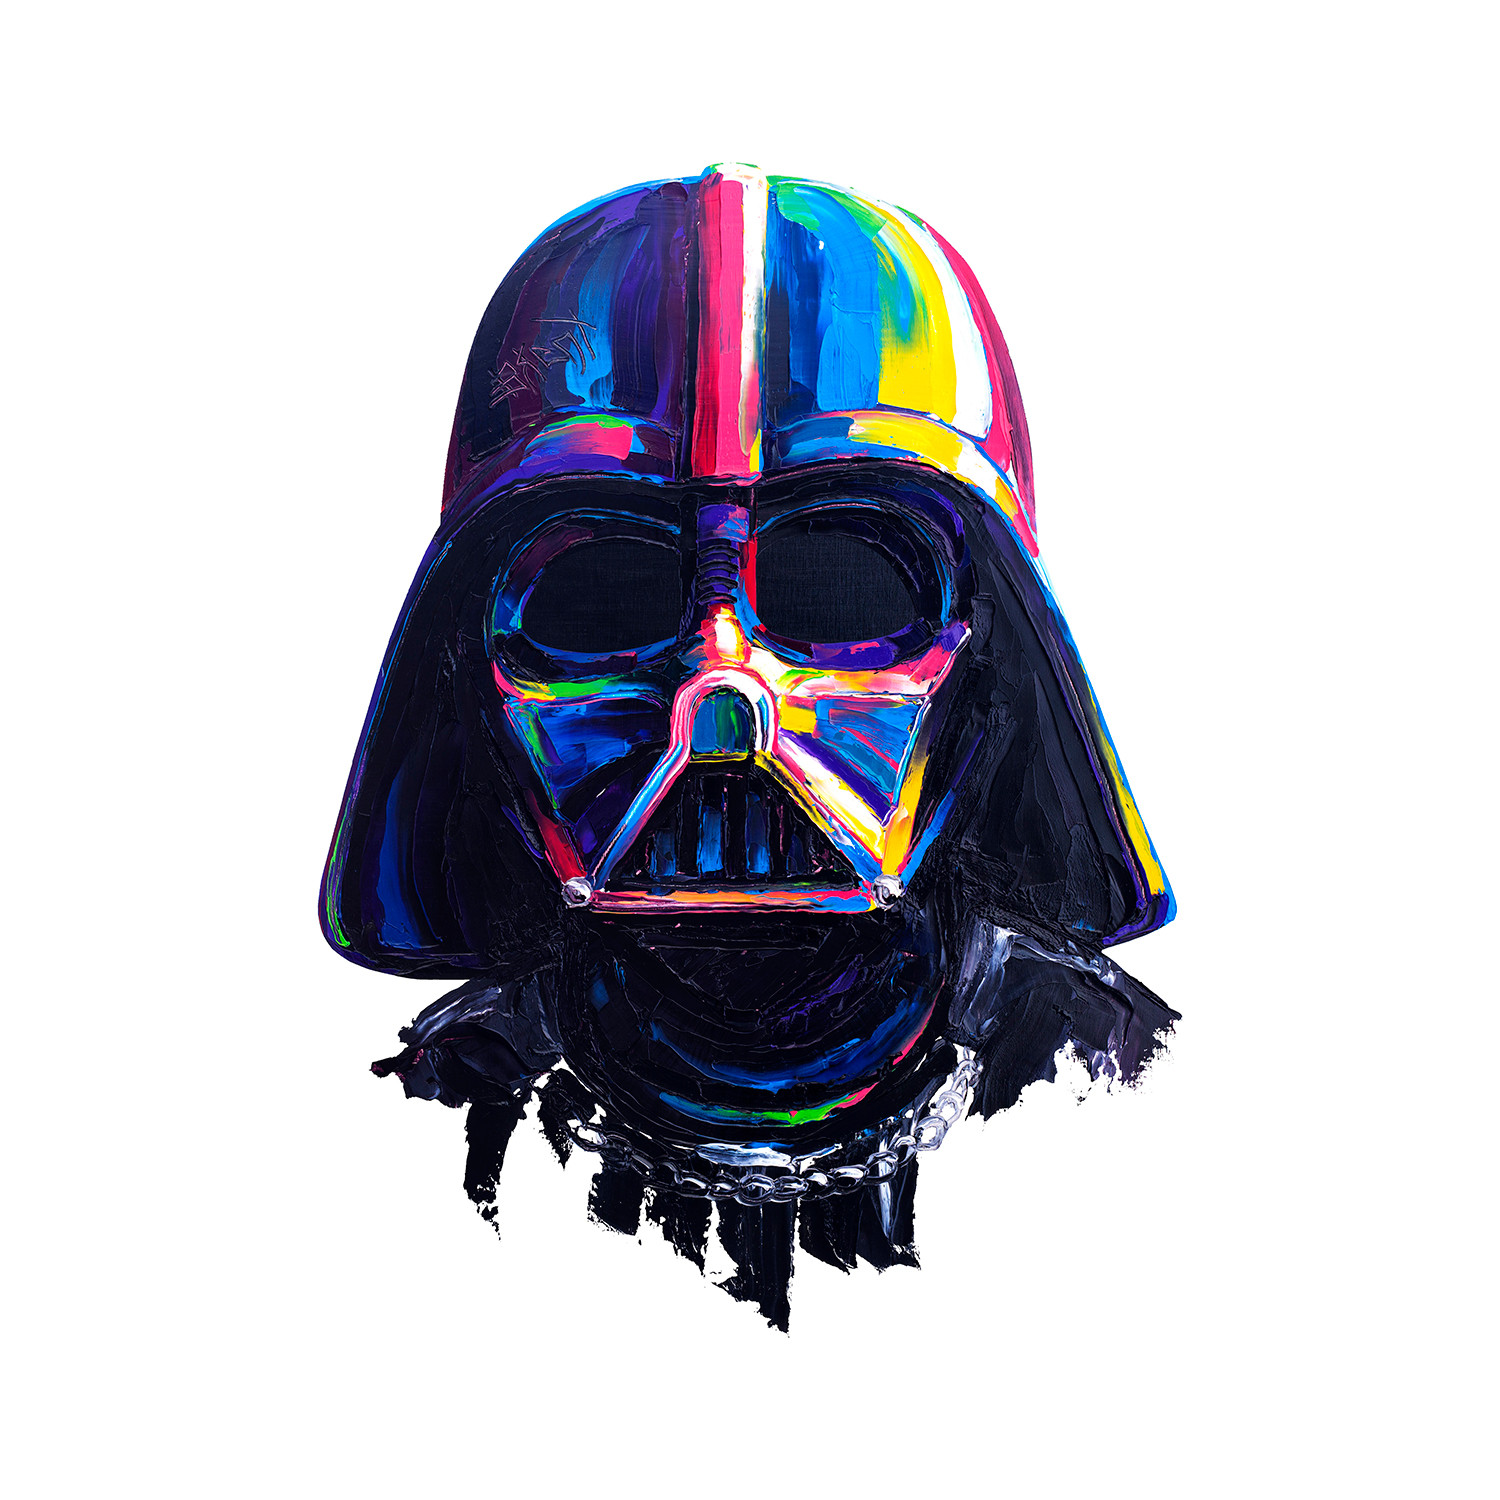 Vader By Brent Star Wars Print 20 X 20 Brent